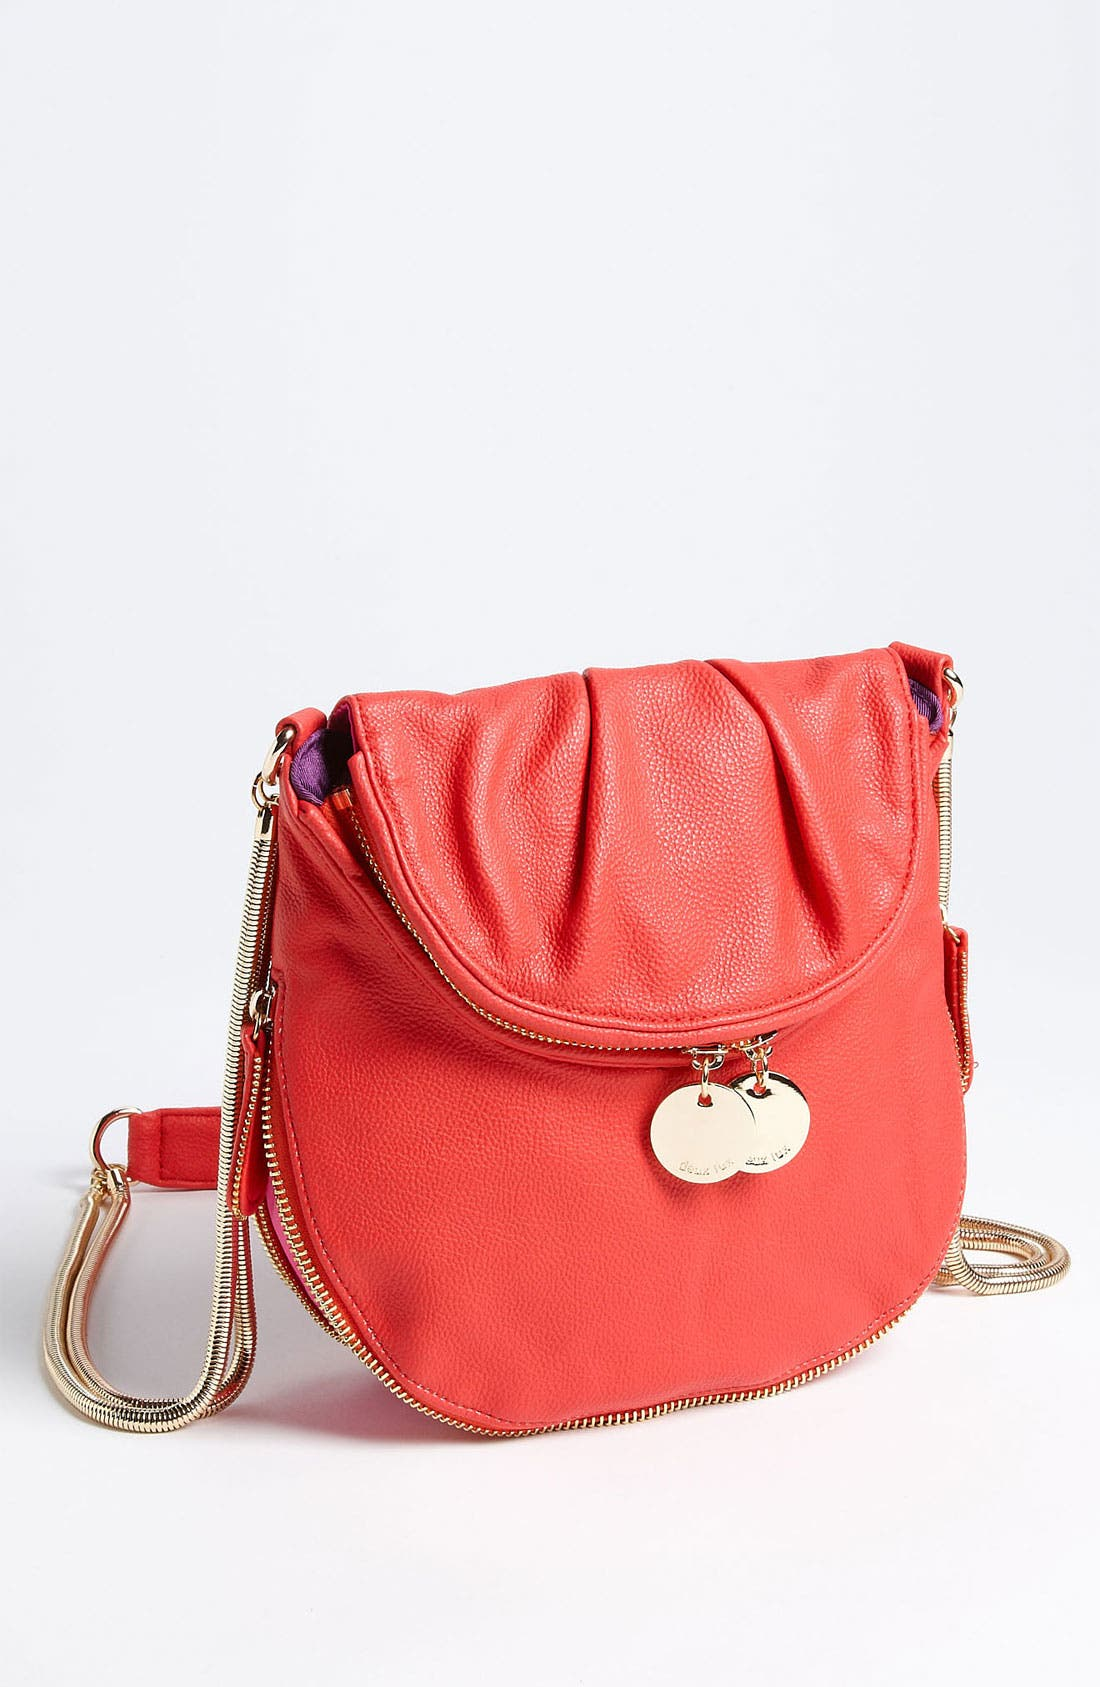 Alternate Image 1 Selected - Deux Lux 'Biba - Small' Crossbody Bag